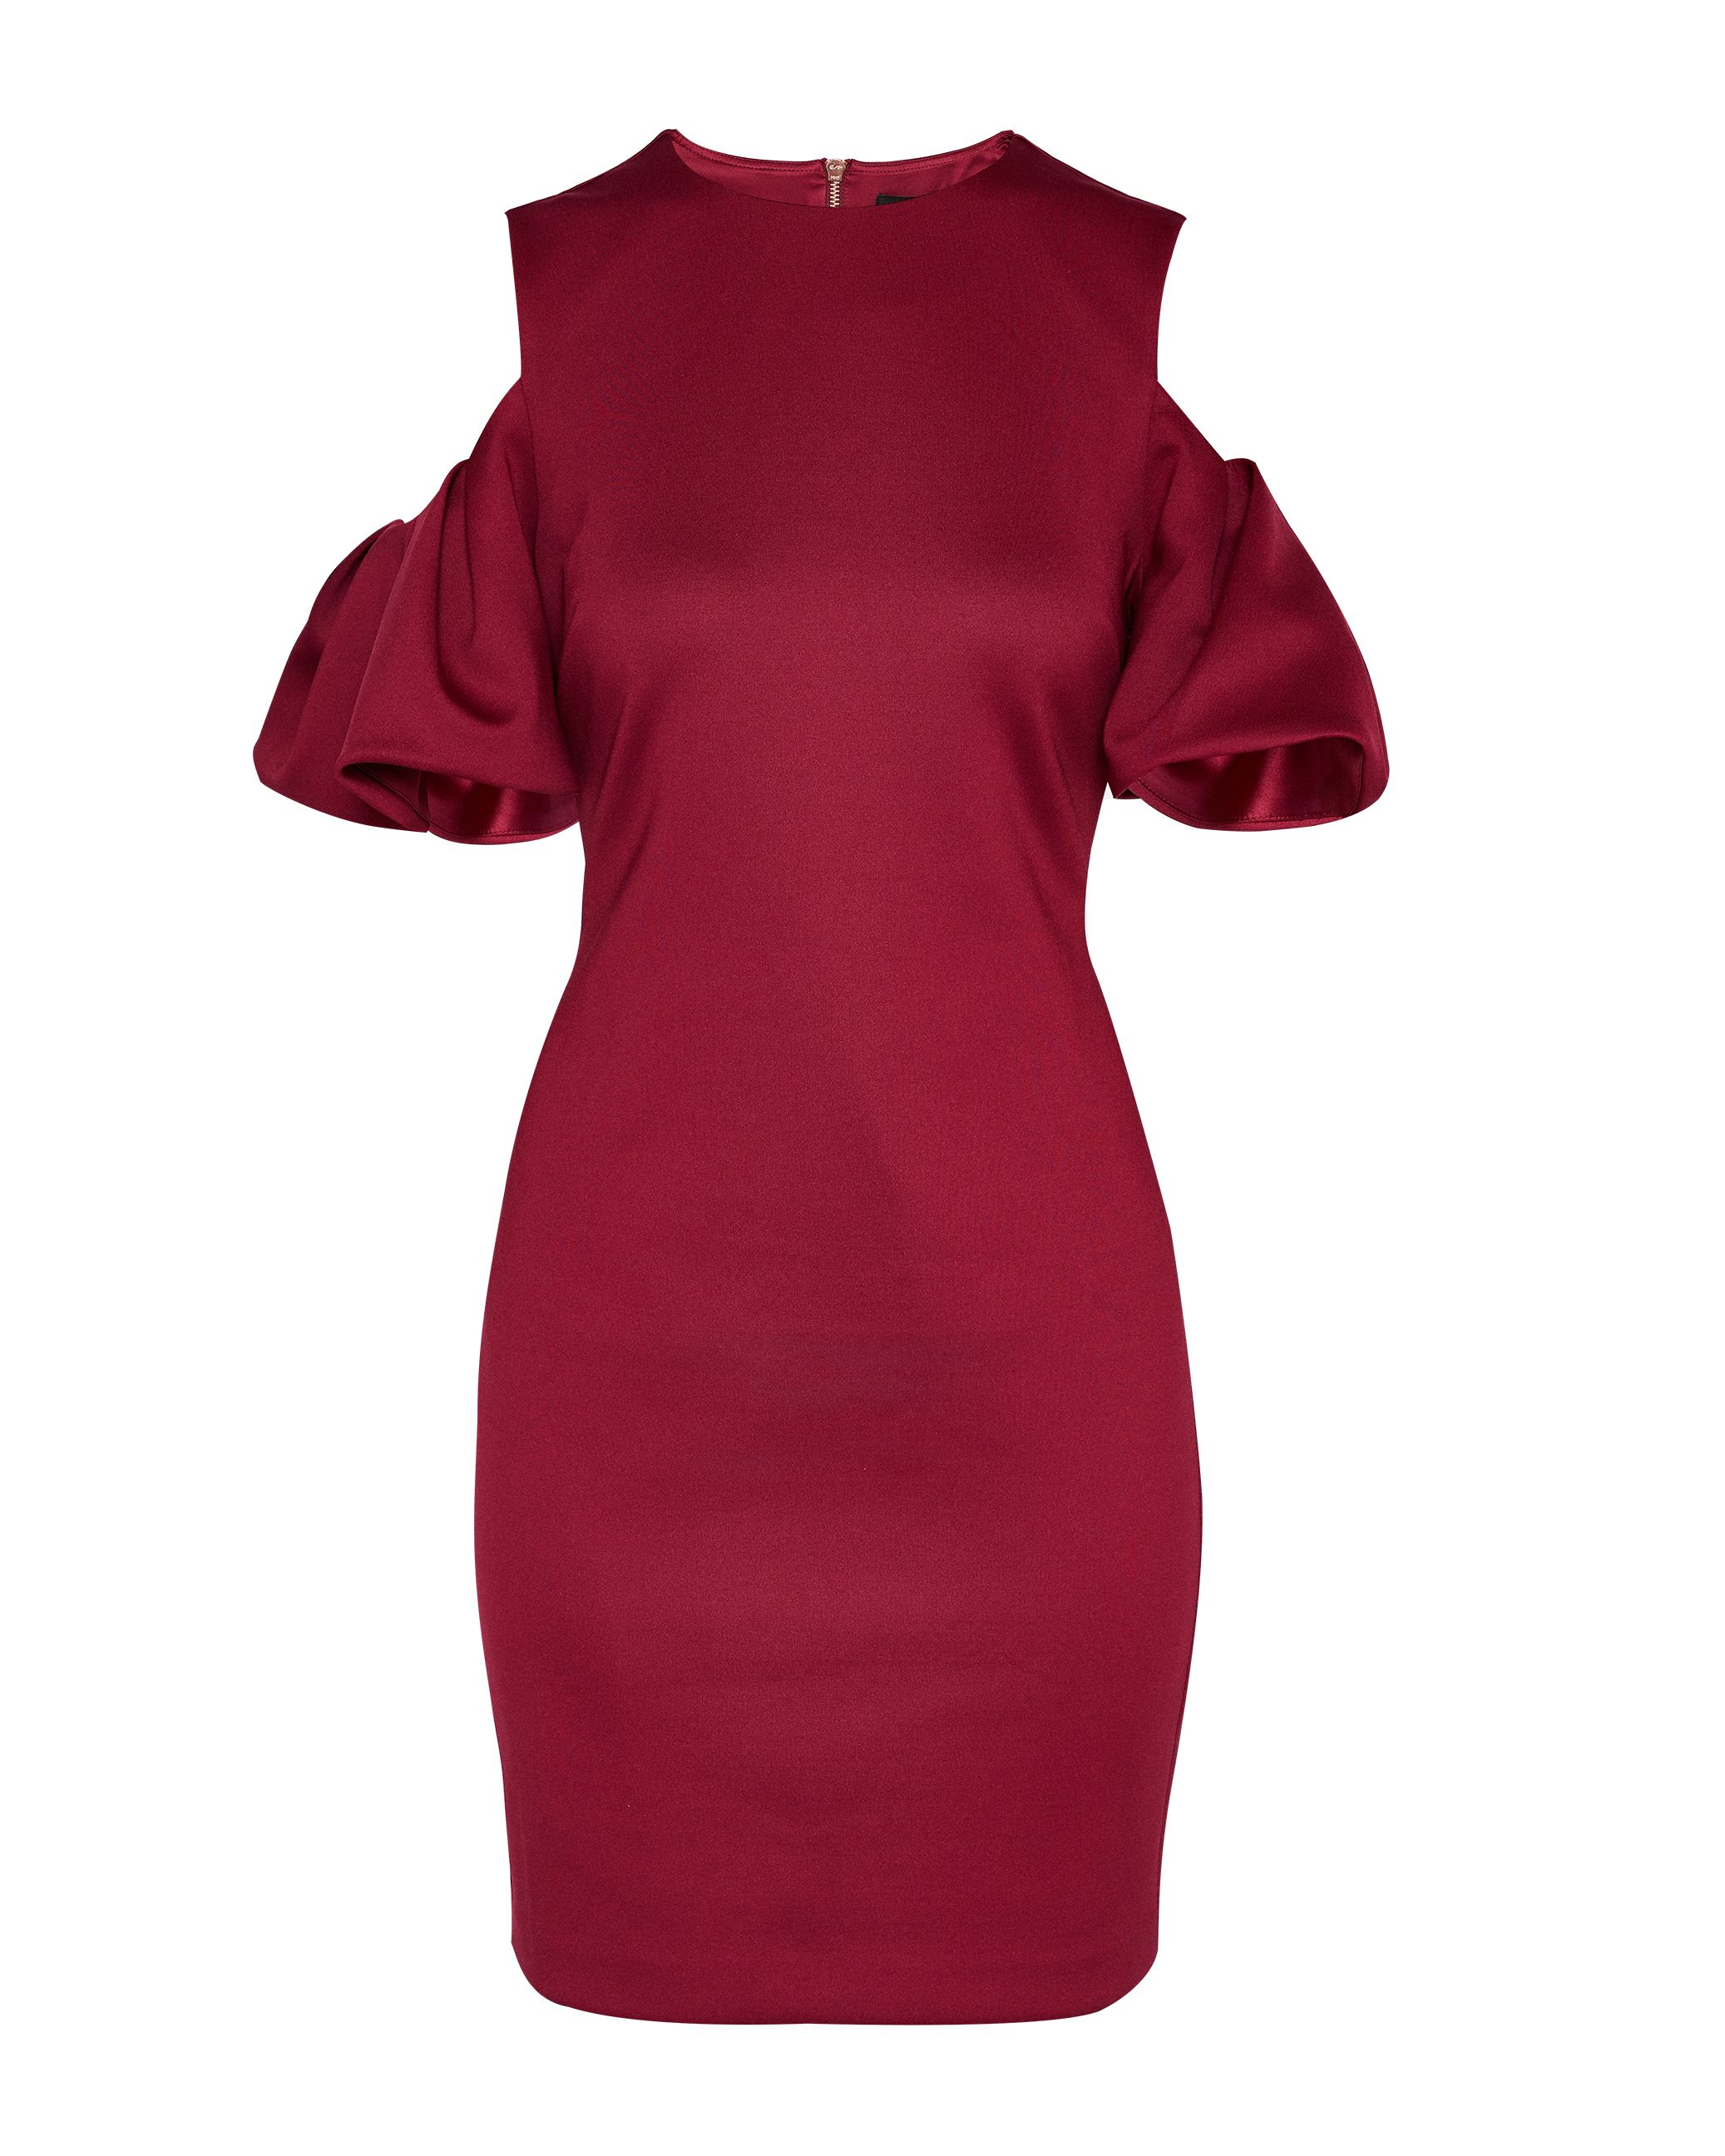 Ted Baker Extreme Cut Out Shoulder Dress, Maroon